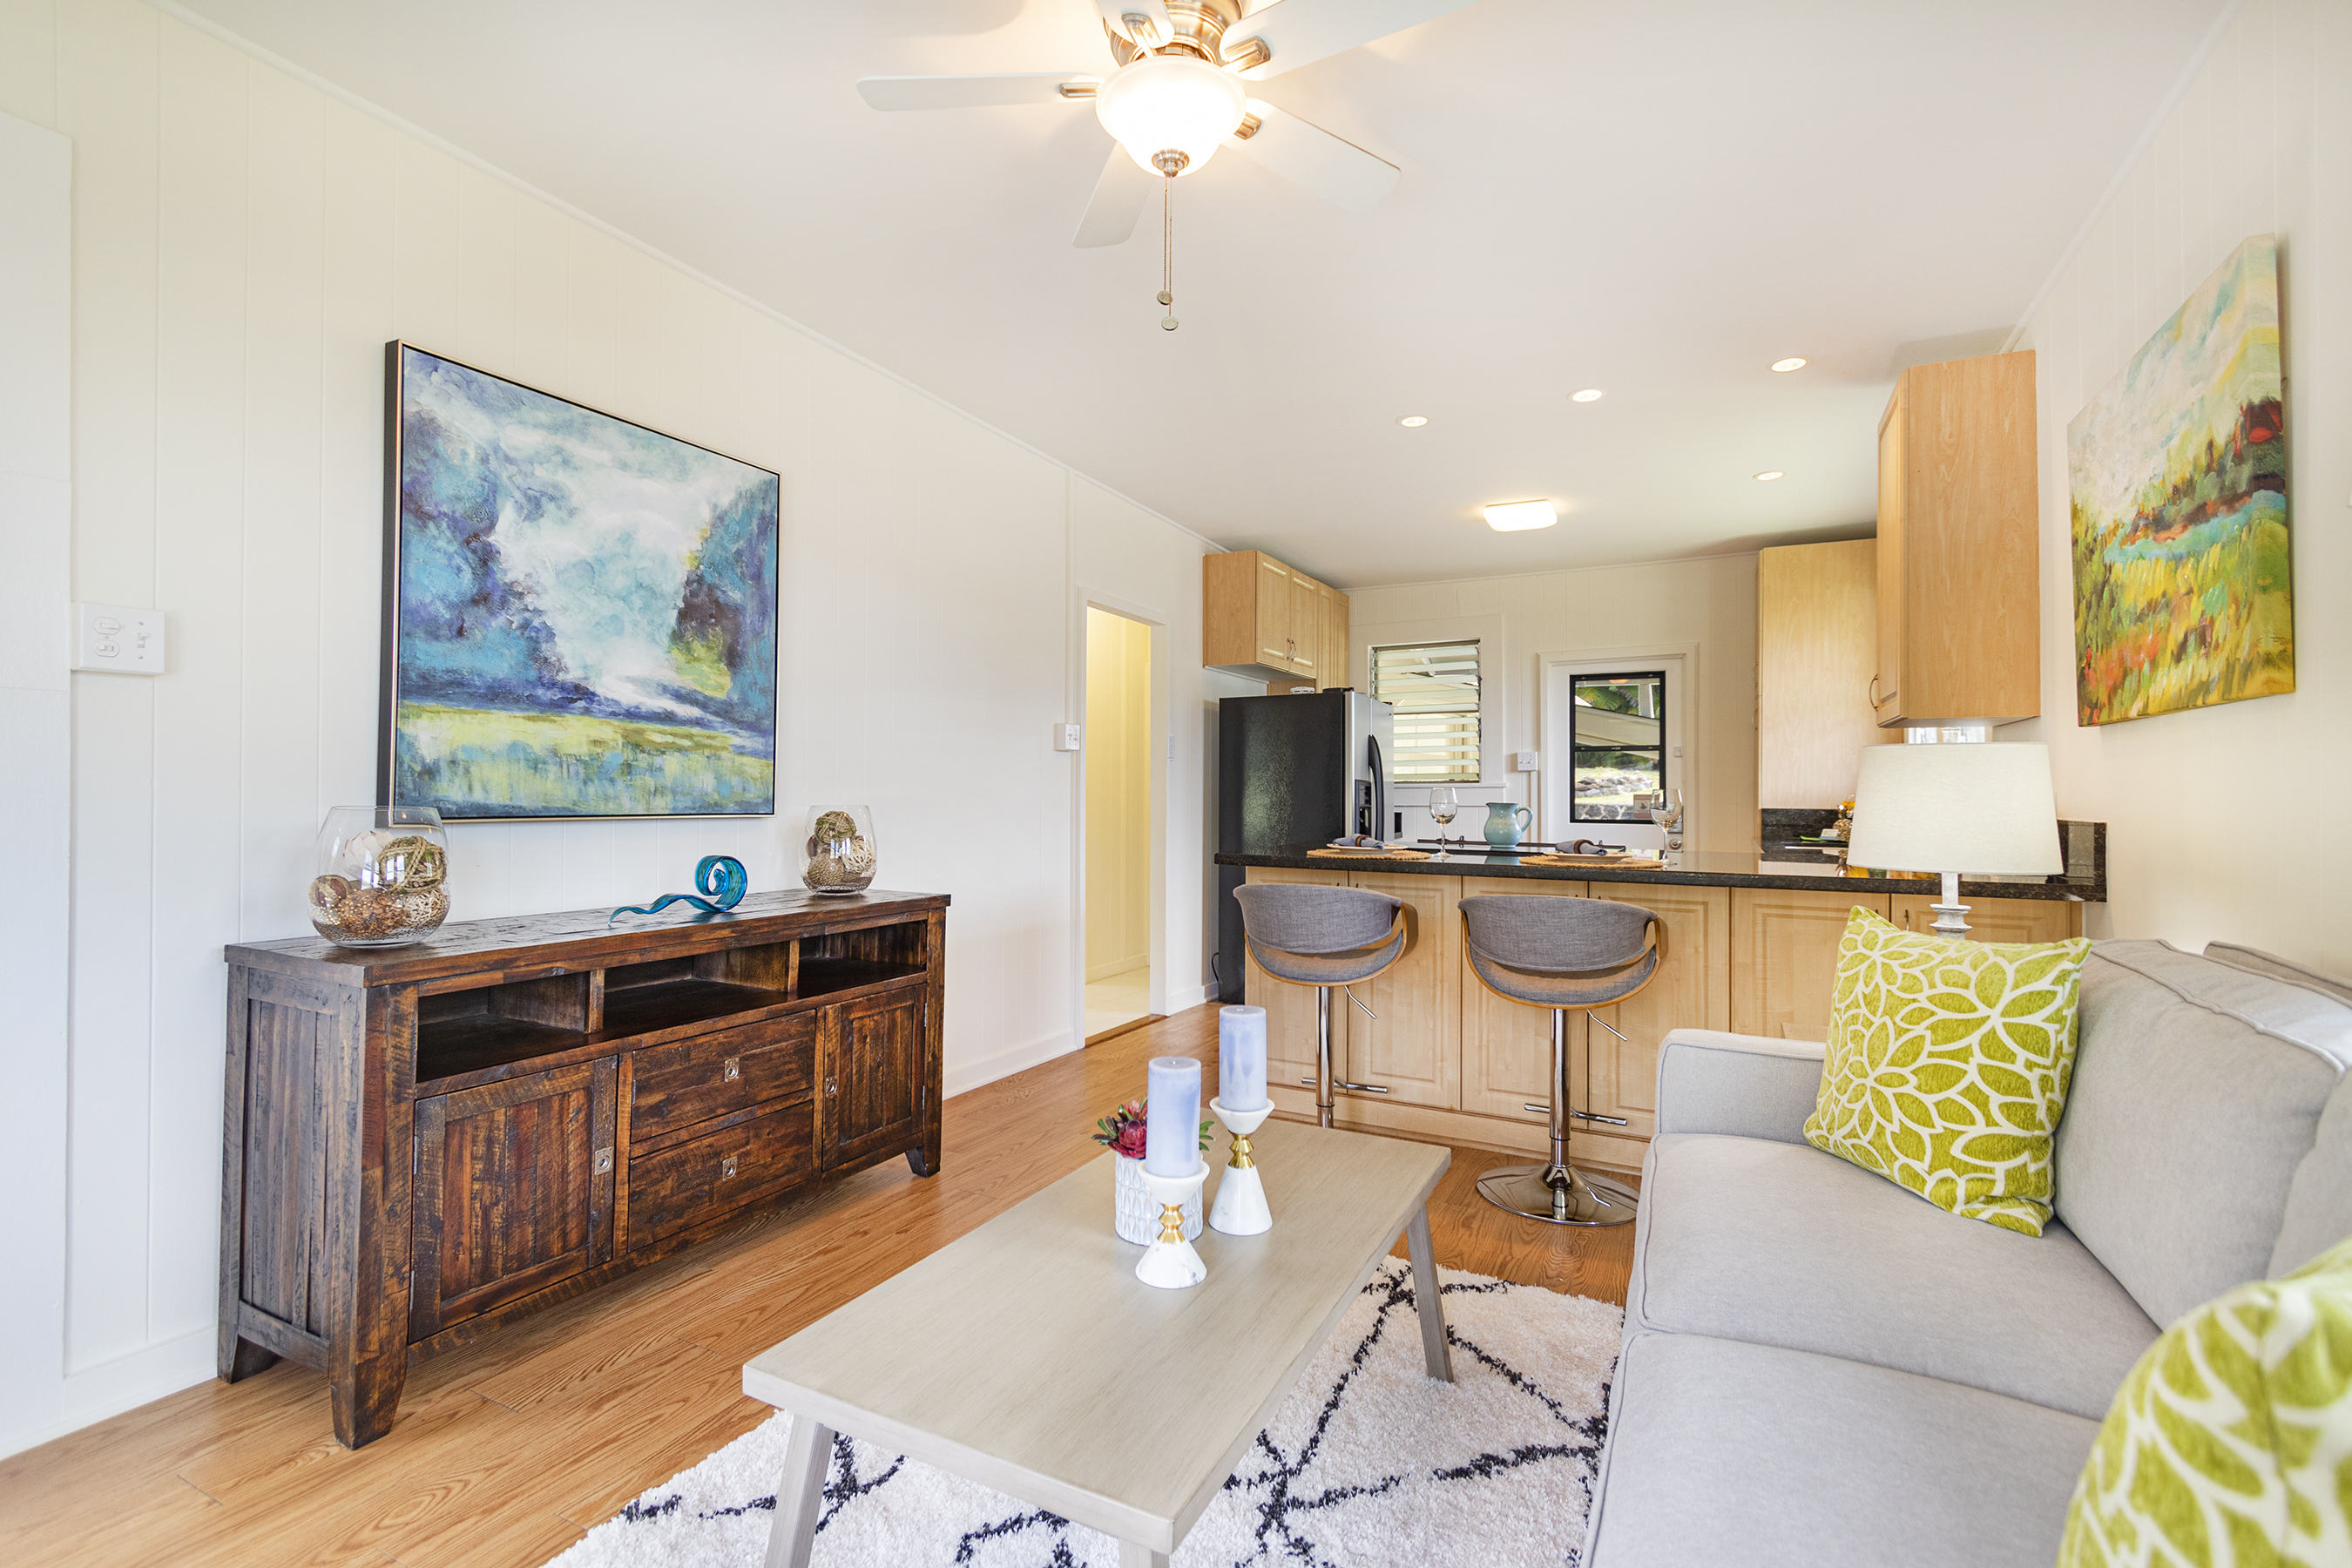 Living room and kitchen view at 1955 9th Avenue, Honolulu 96816